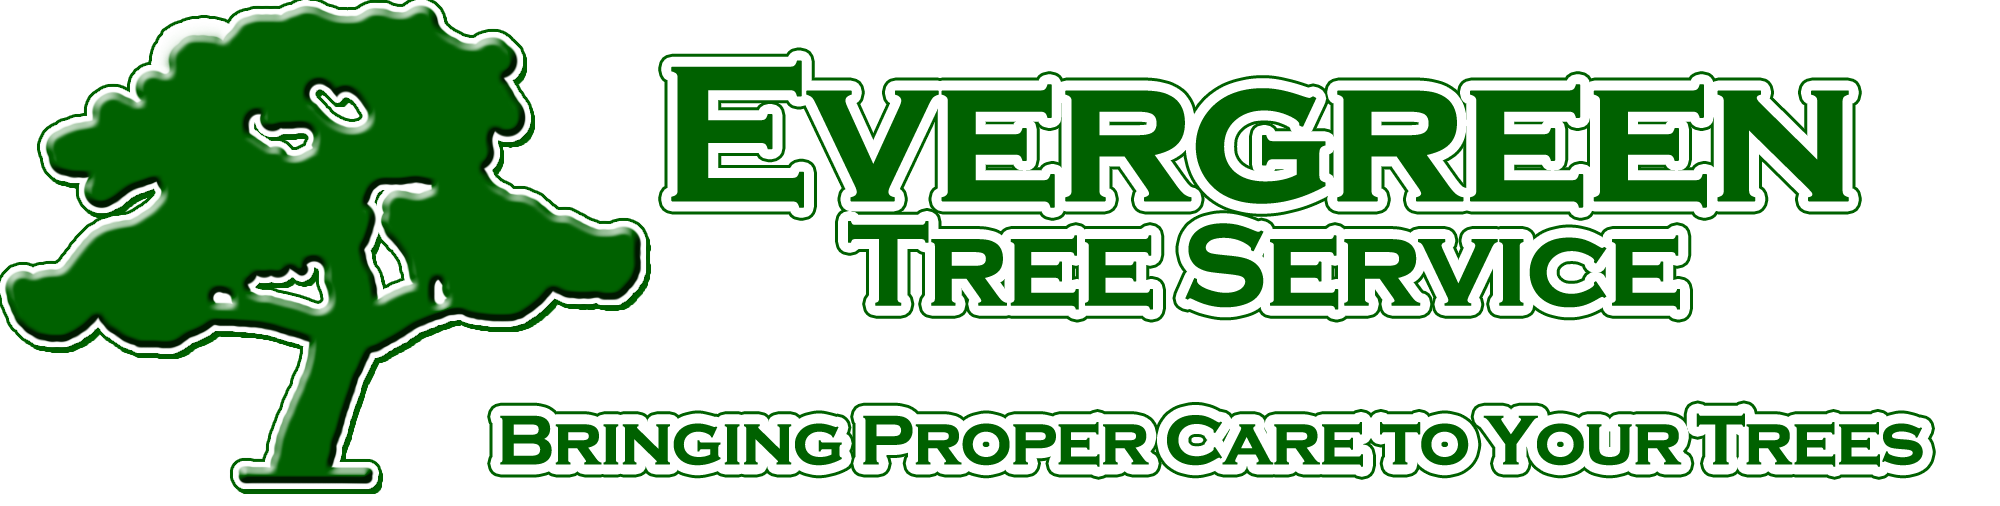 Professional Tree Services Purcellville, Virginia Tree. Free Parts Inventory Software. Are Reverse Mortgages A Good Idea. What Is The Interest Rate For Wells Fargo Savings Account. Malpractice Insurance Lawyer. Cheapest Fax To Email Service. Paris Las Vegas Box Office Seton Hall Online. Plastic Surgeon Palm Beach Gardens. Mpp To Pdf Converter Online Jeep Dealers Ga